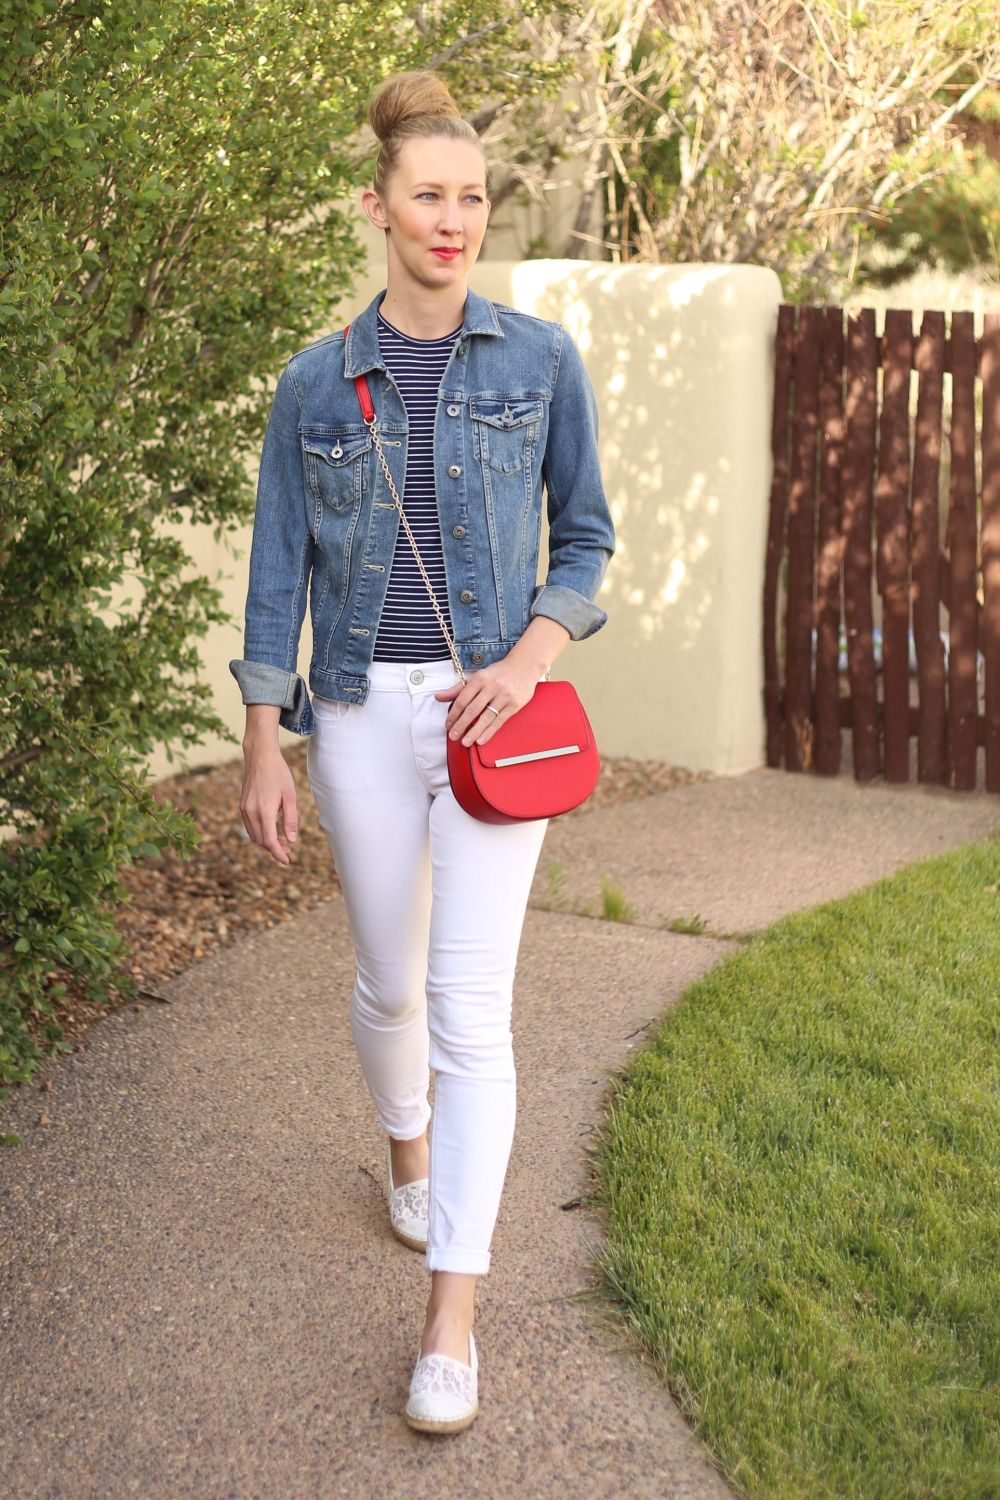 371fb89df7 Fourth of July Outfit Ideas on Dresses And Denim Fashion Blog ...